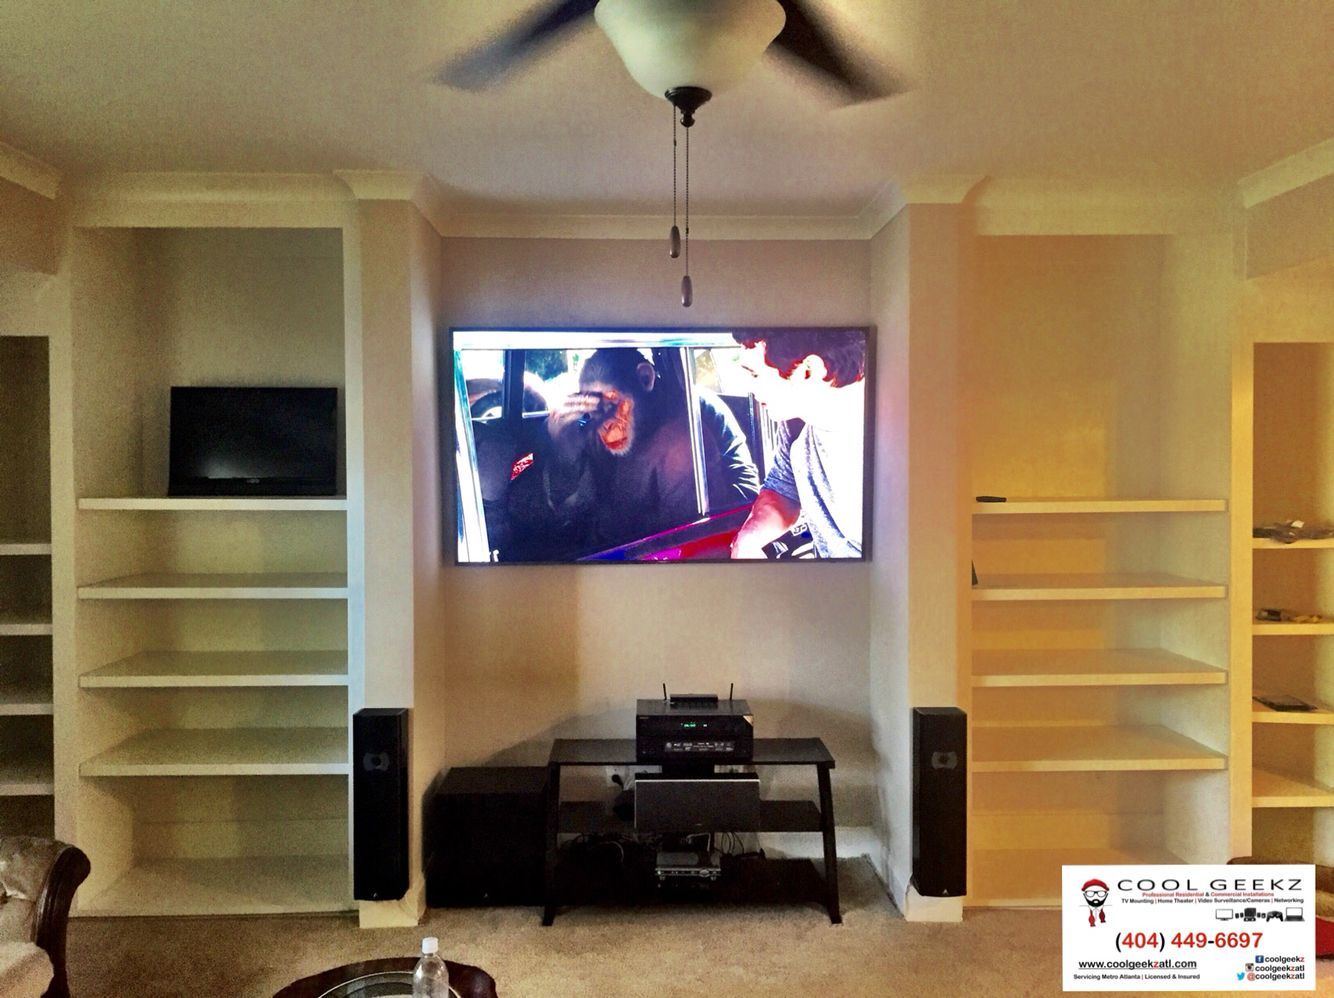 full home theater setup done 75 4k tv onkyo receiver atlantic tech speakers and a monster subwoofer  [ 1334 x 998 Pixel ]